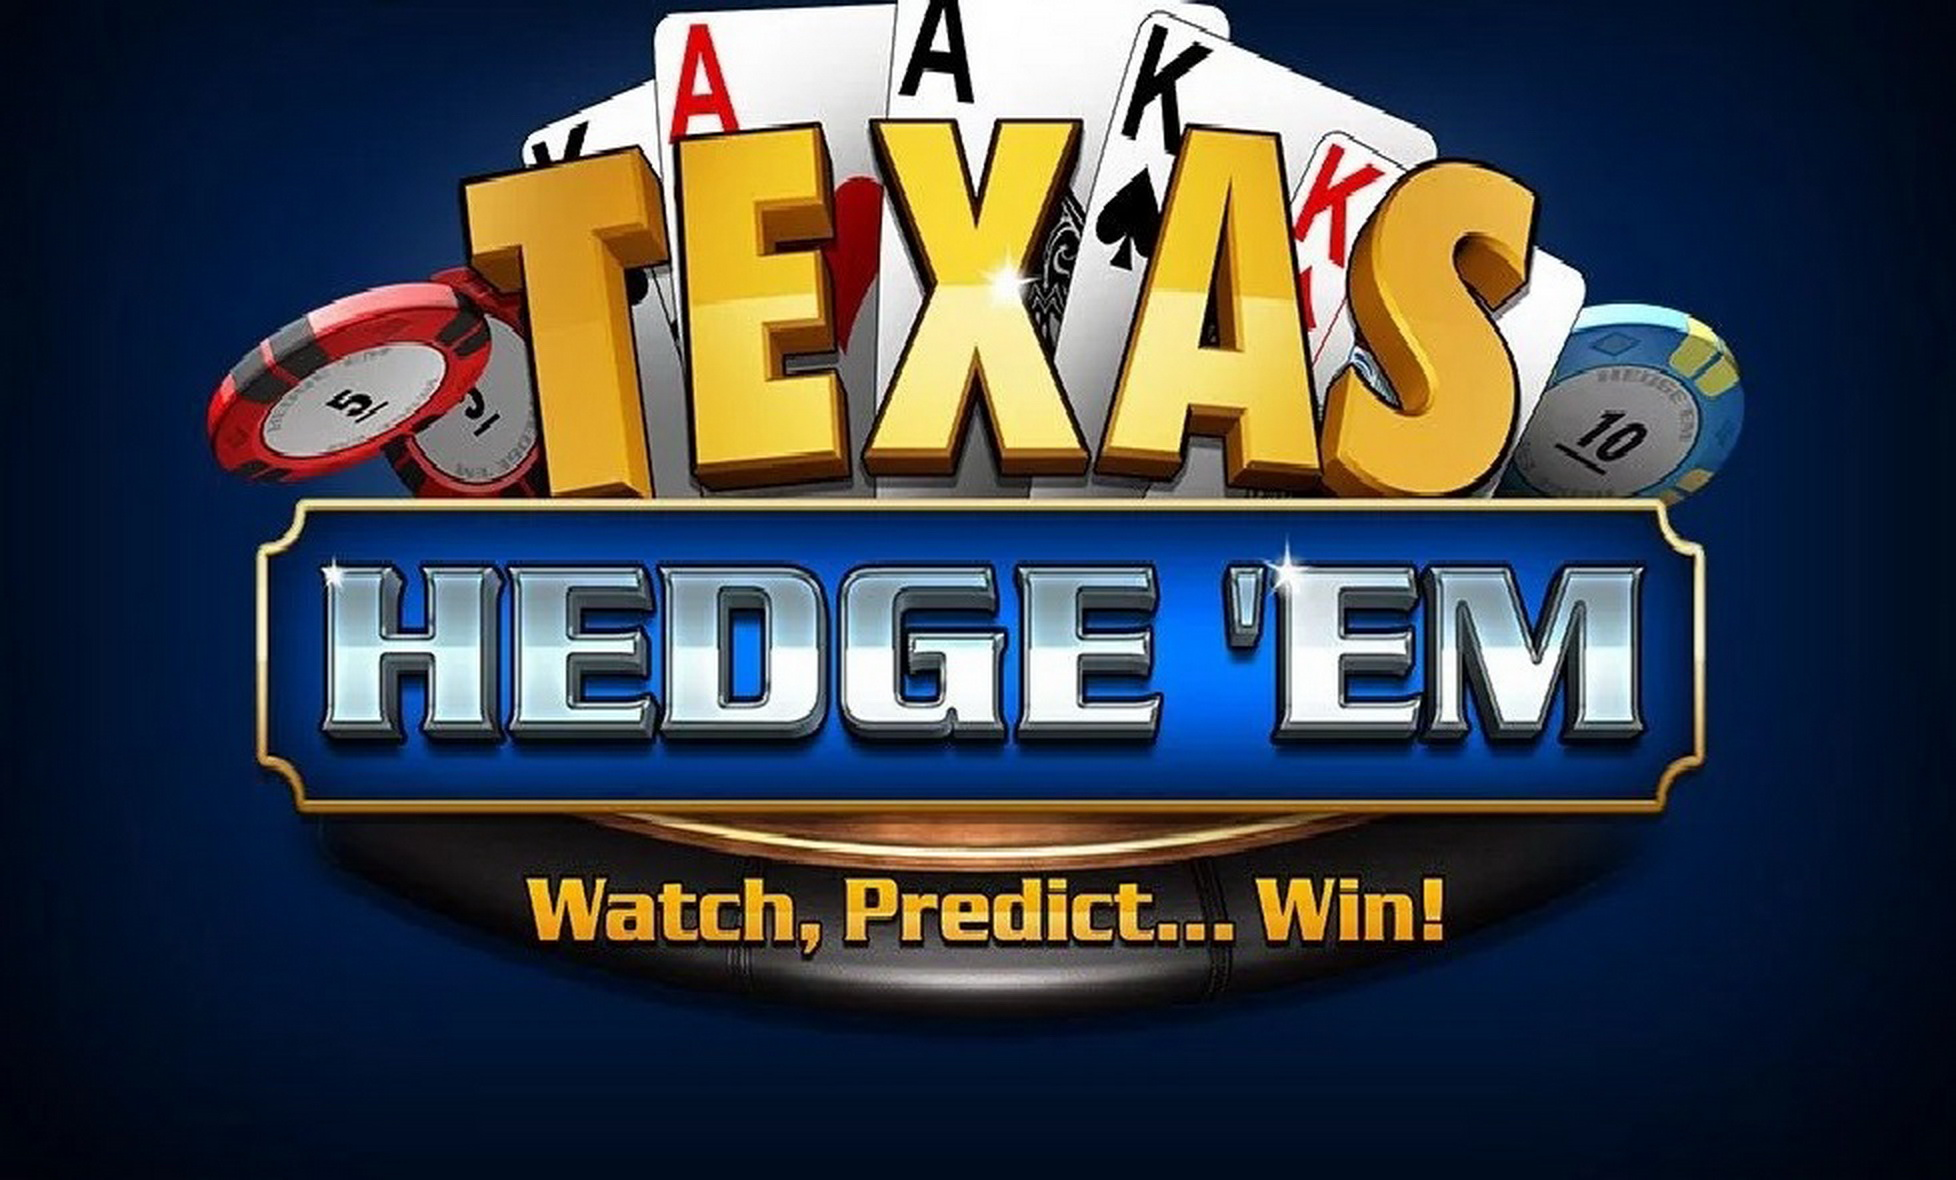 Texas Hedge 'Em Online Slot Demo Game by Qeetoto